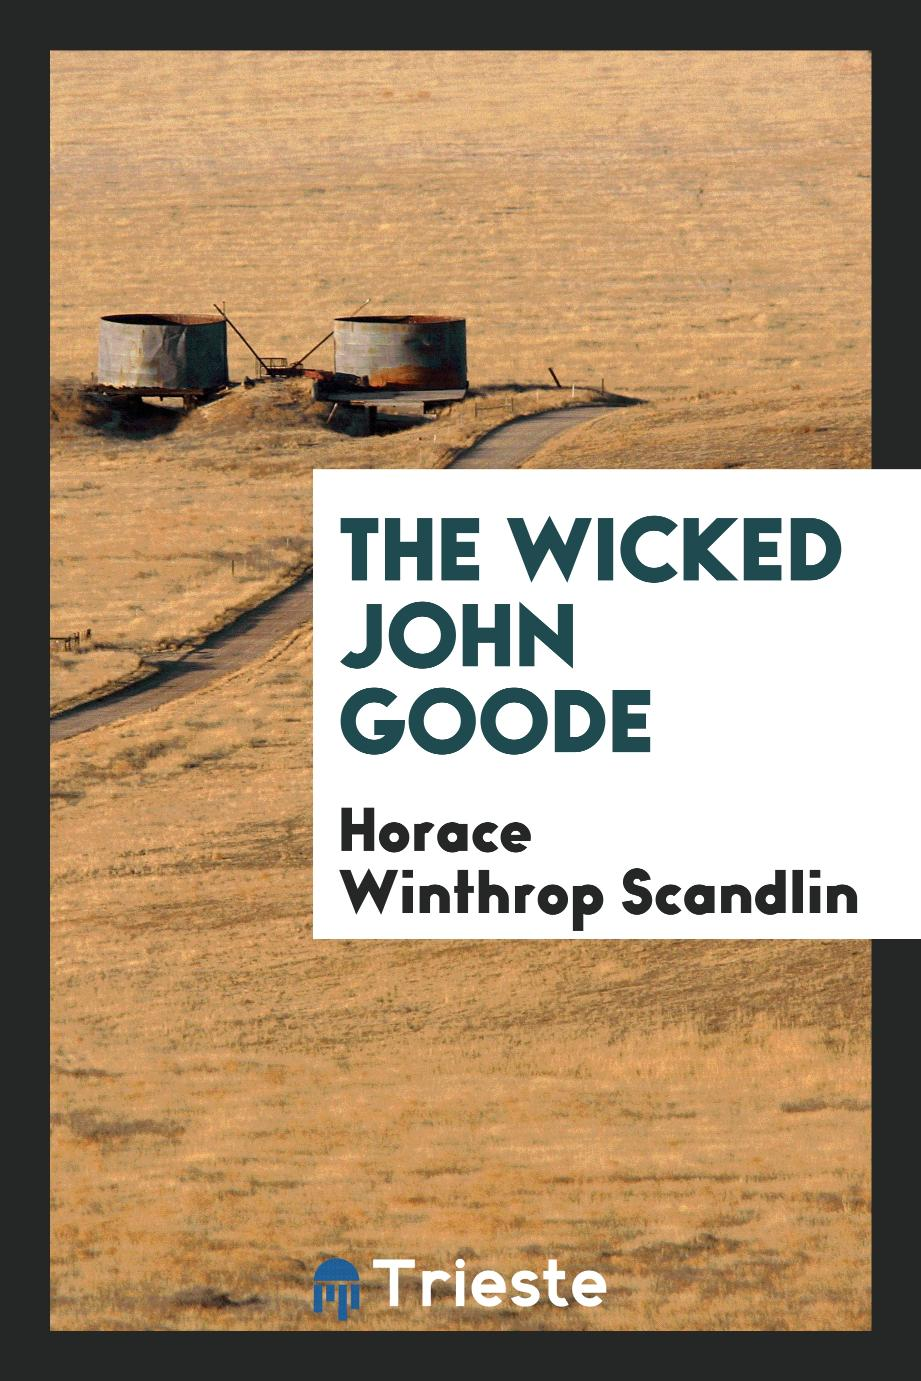 The wicked John Goode